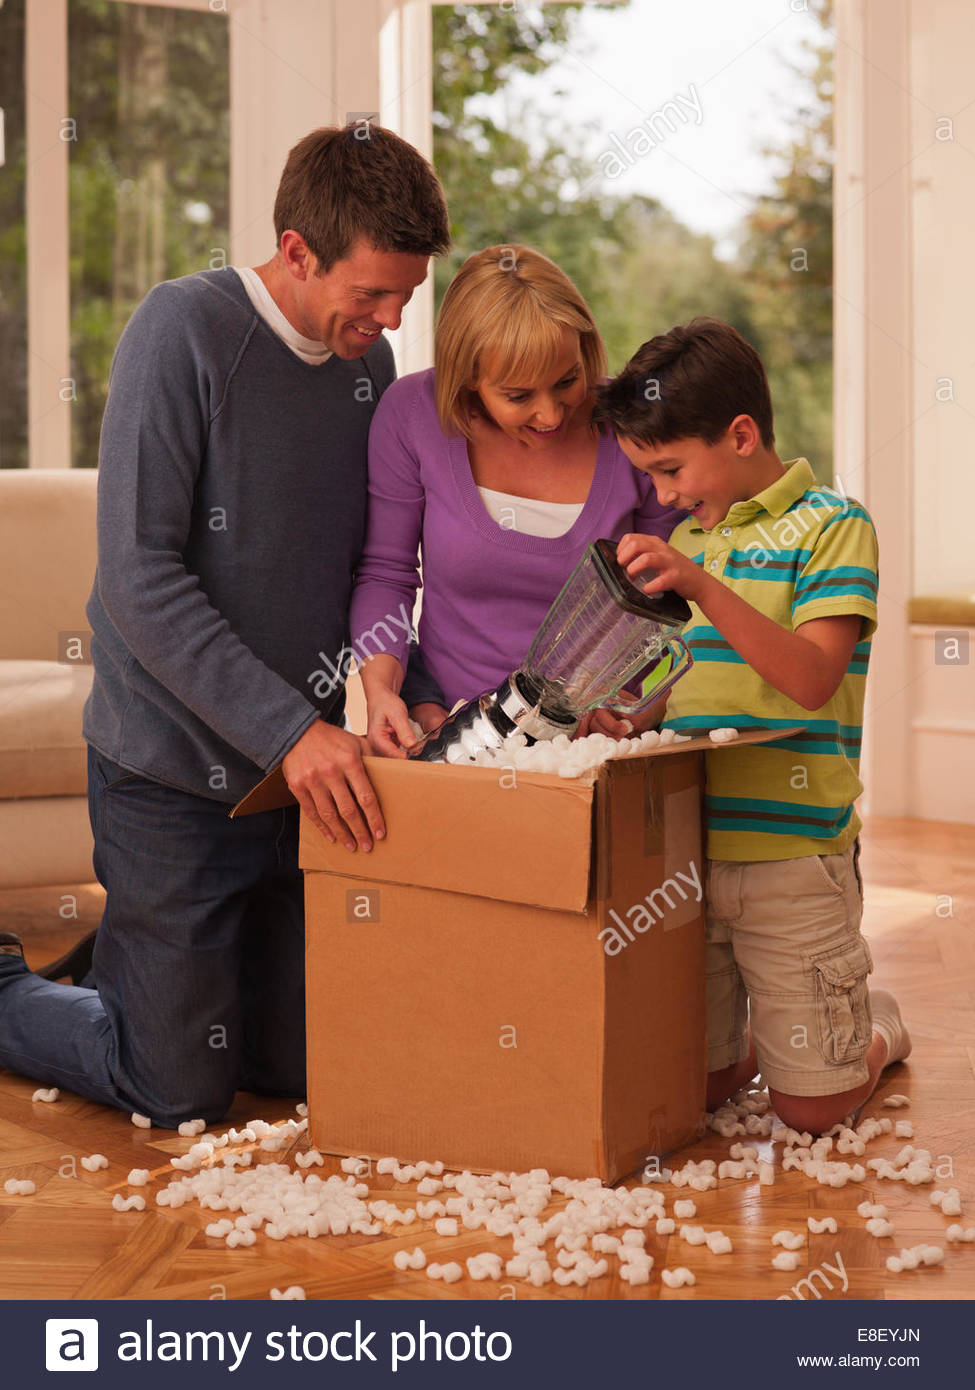 Family opening box in living room - Stock Image